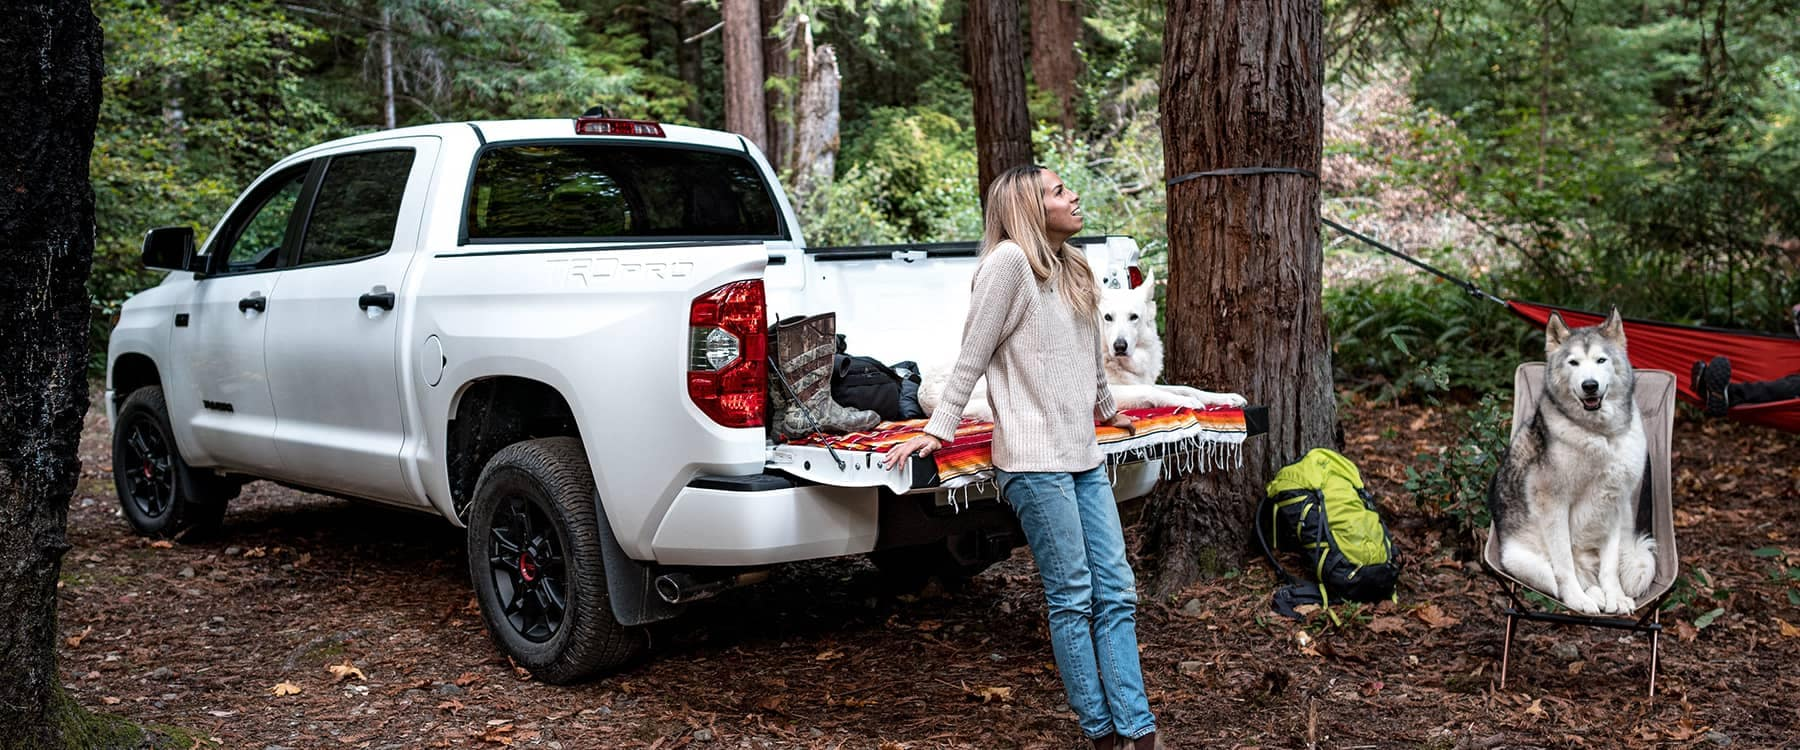 2021 Toyota Tundra parked in woods with woman and two huskies